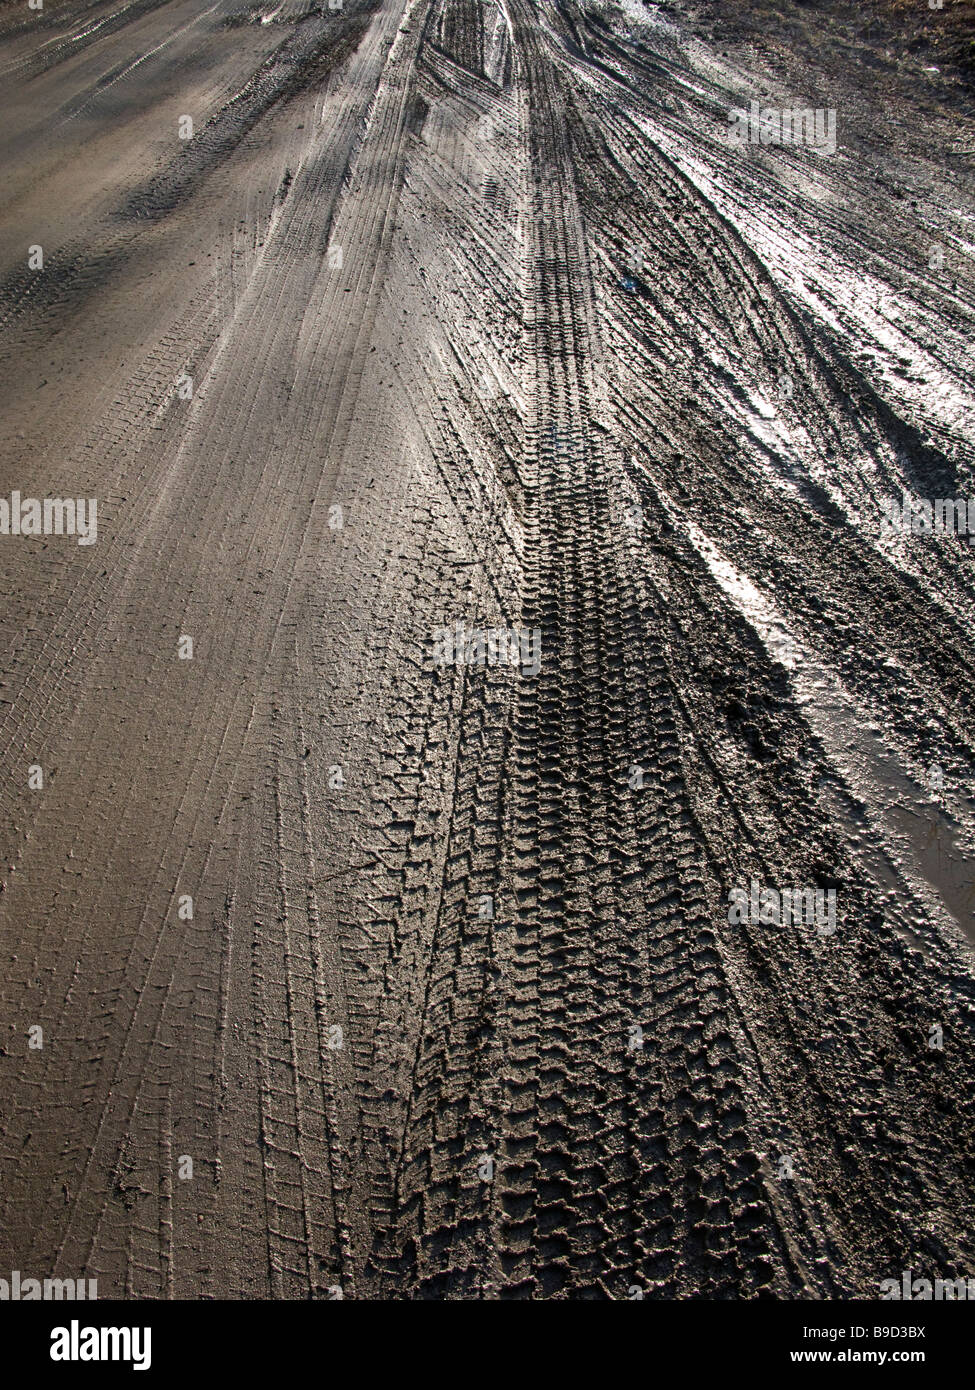 a muddy Vermont dirt road with a variety of tire impressions - Stock Image